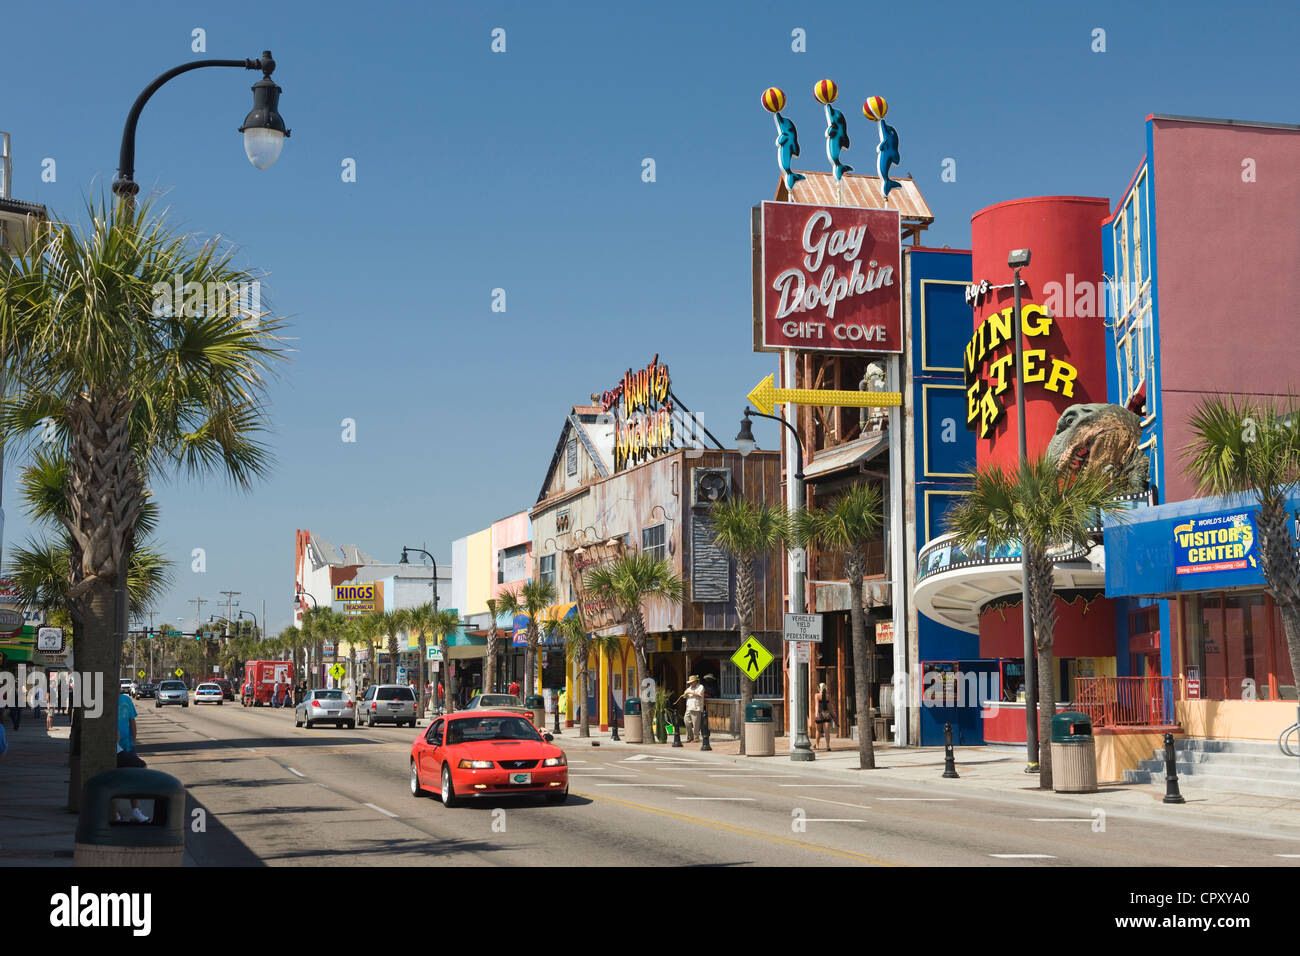 Hollywood In Myrtle Beach Sc